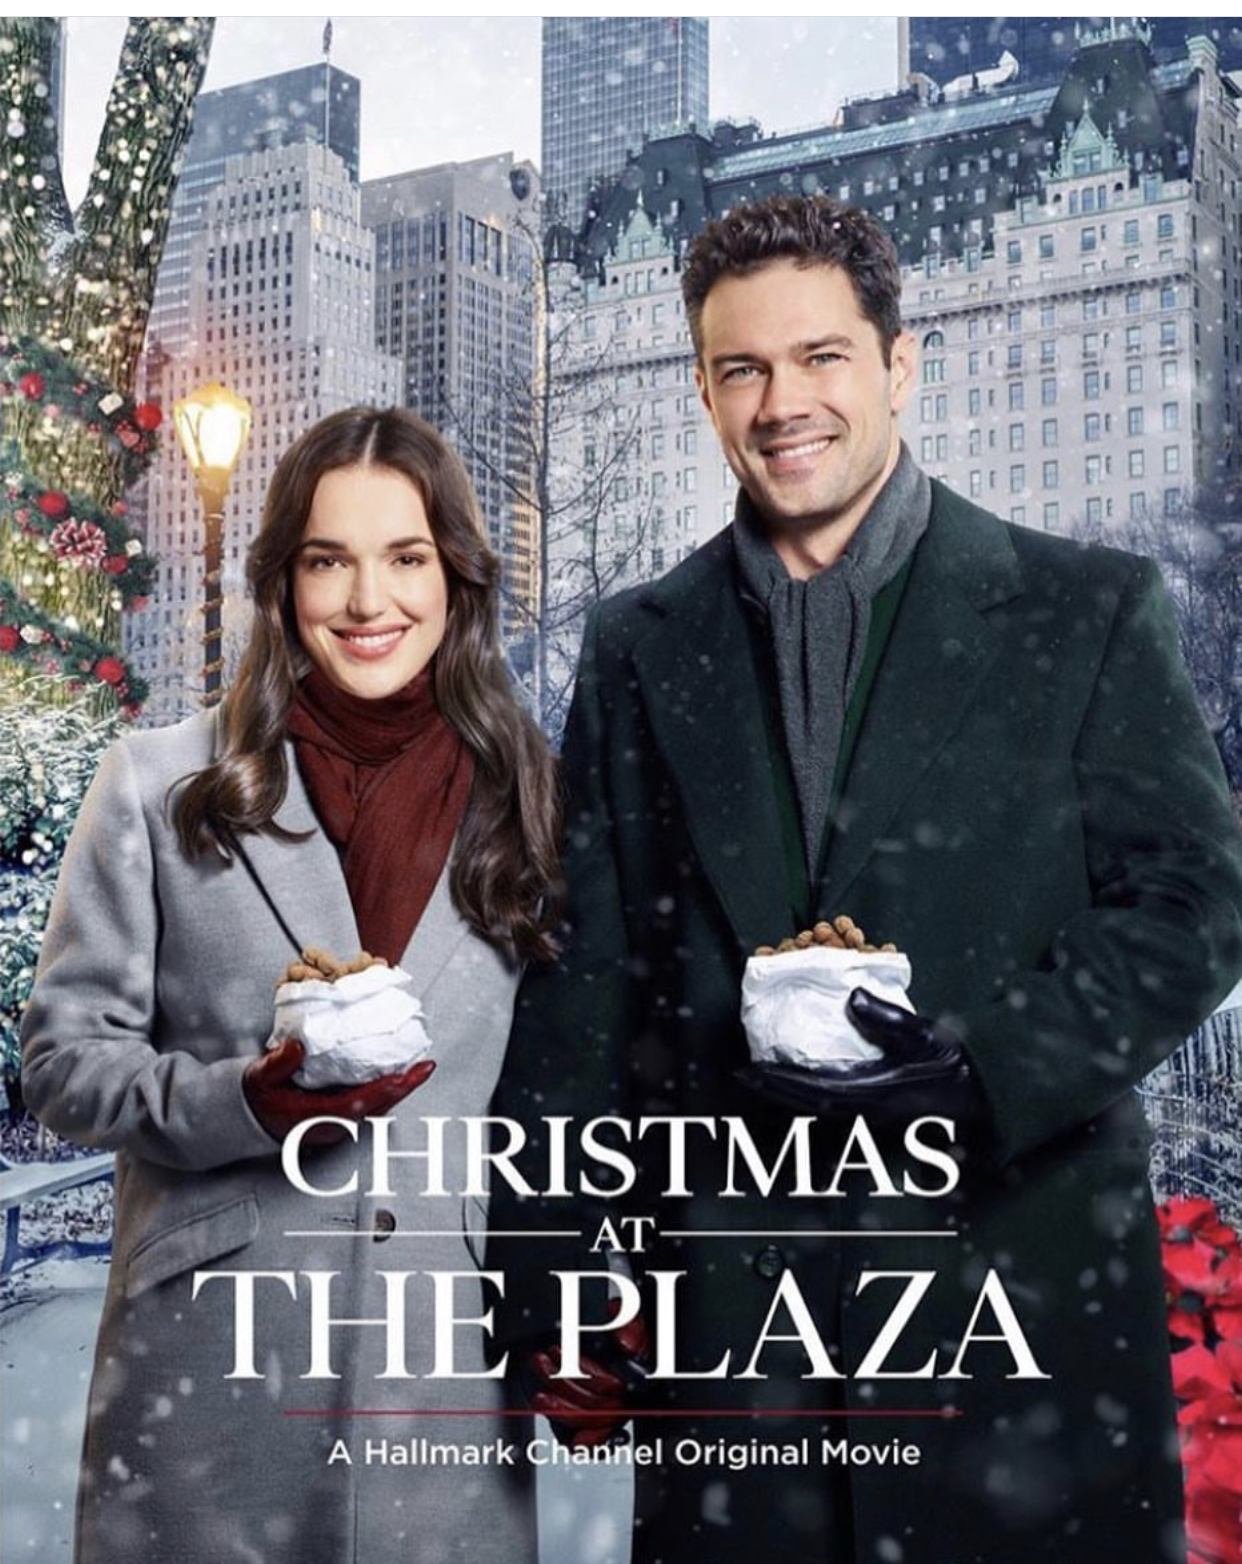 Christmas at the Plaza (TV Movie 2019) - IMDb